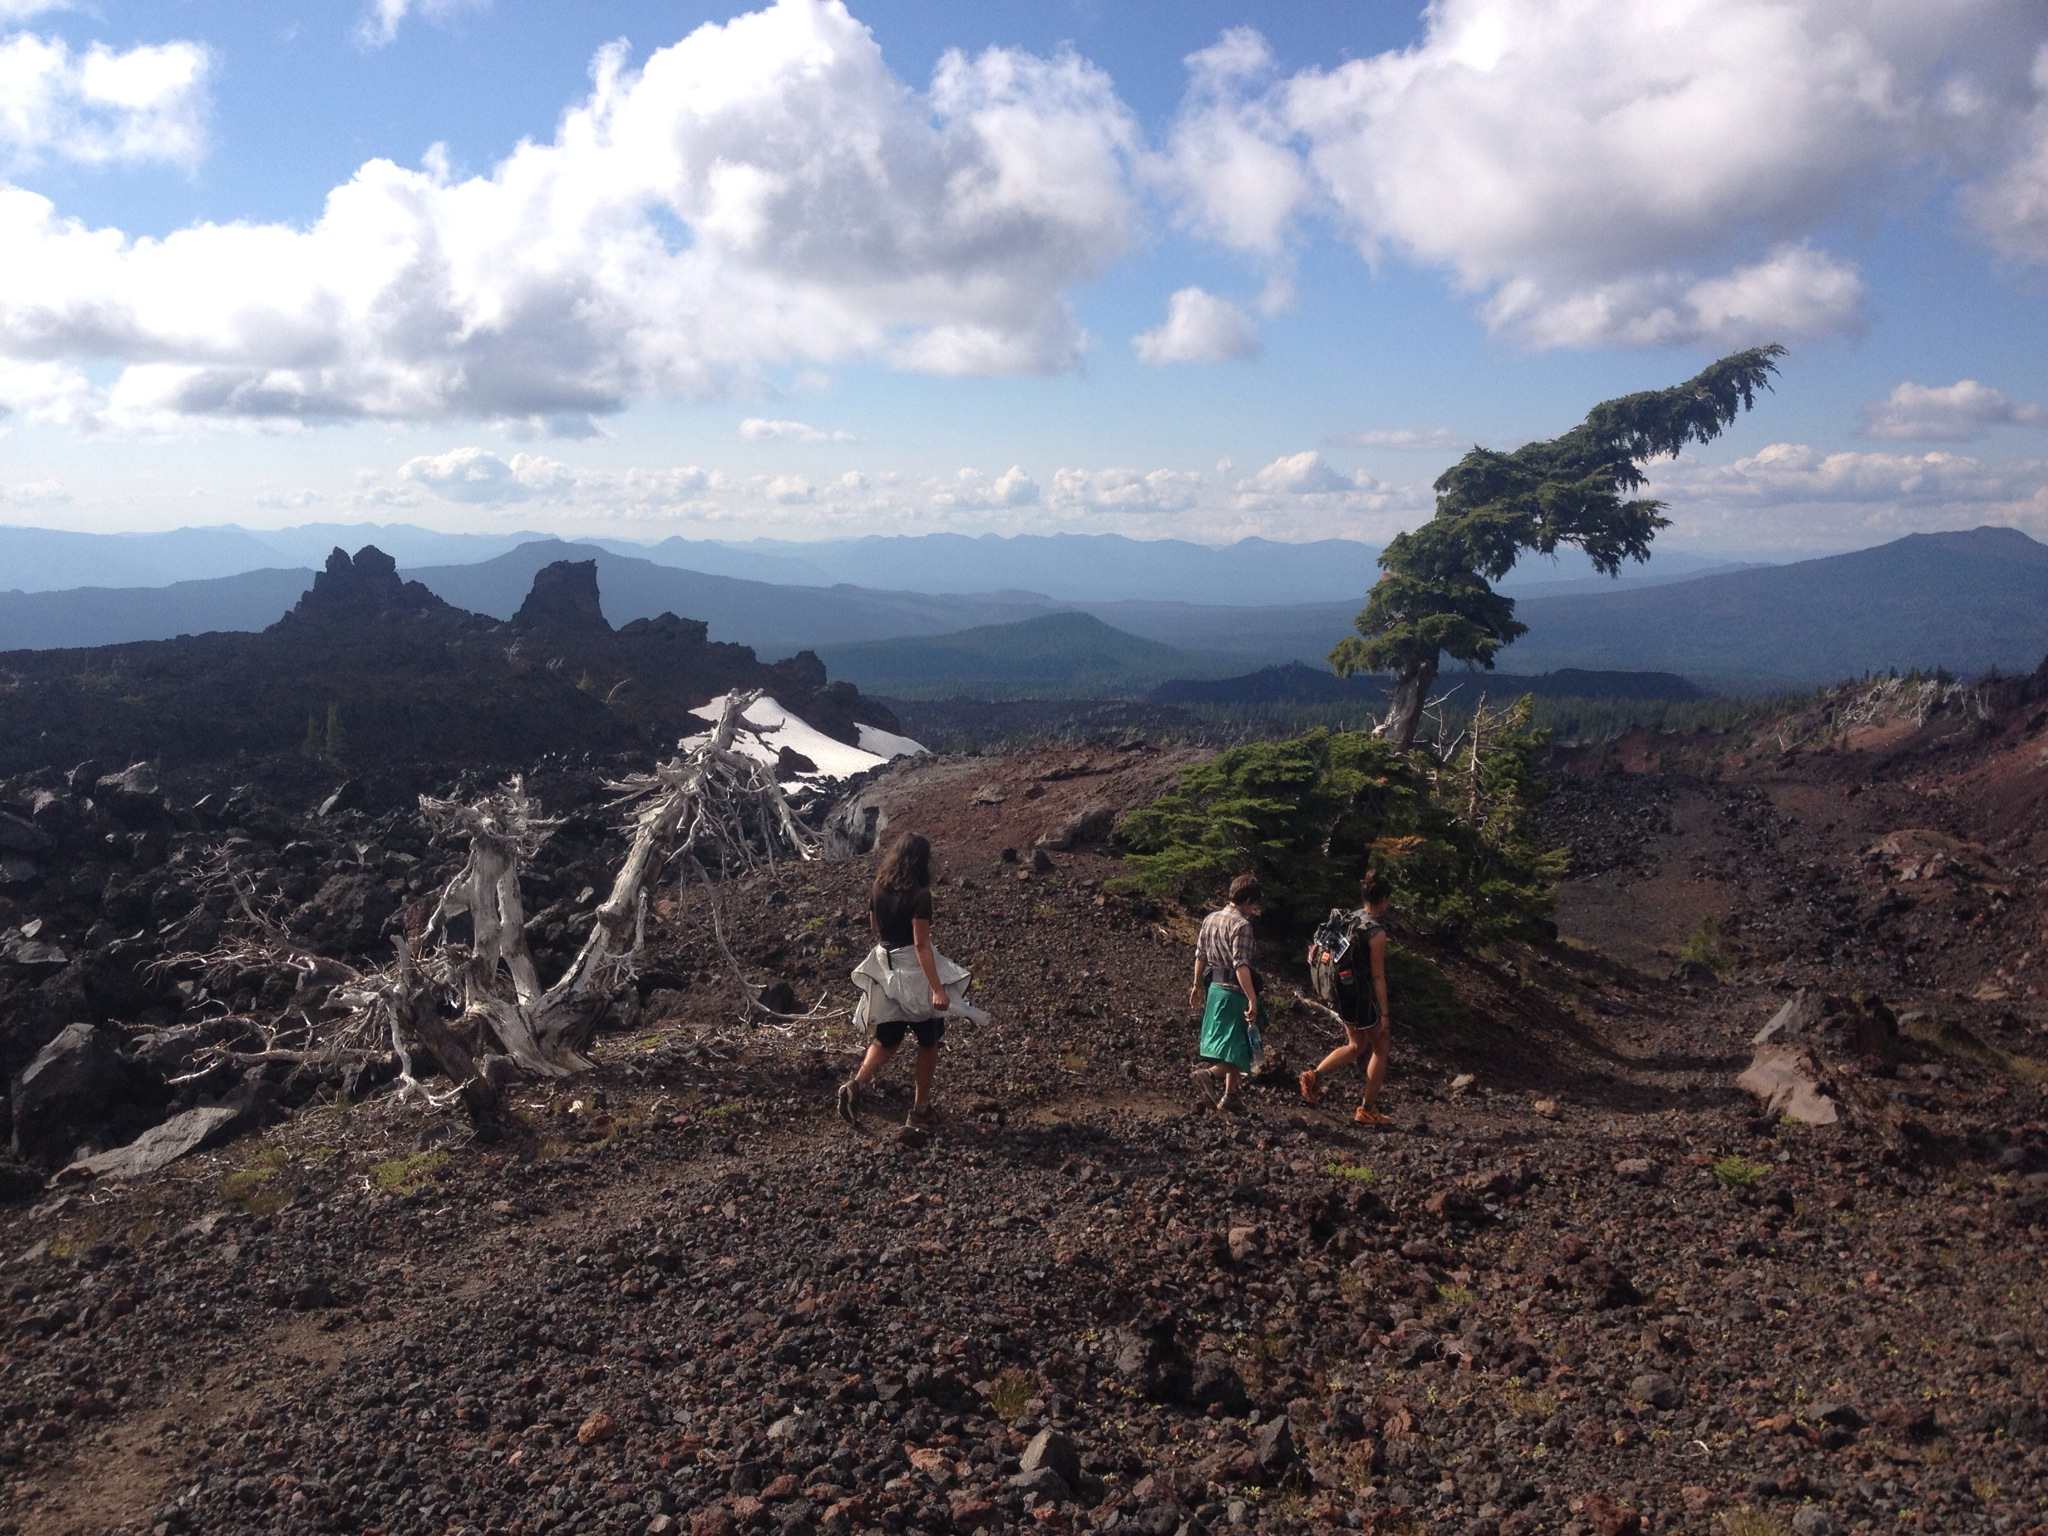 Emu, Hot Tang, and Beacon slack-packing across the lava fields before Bend.